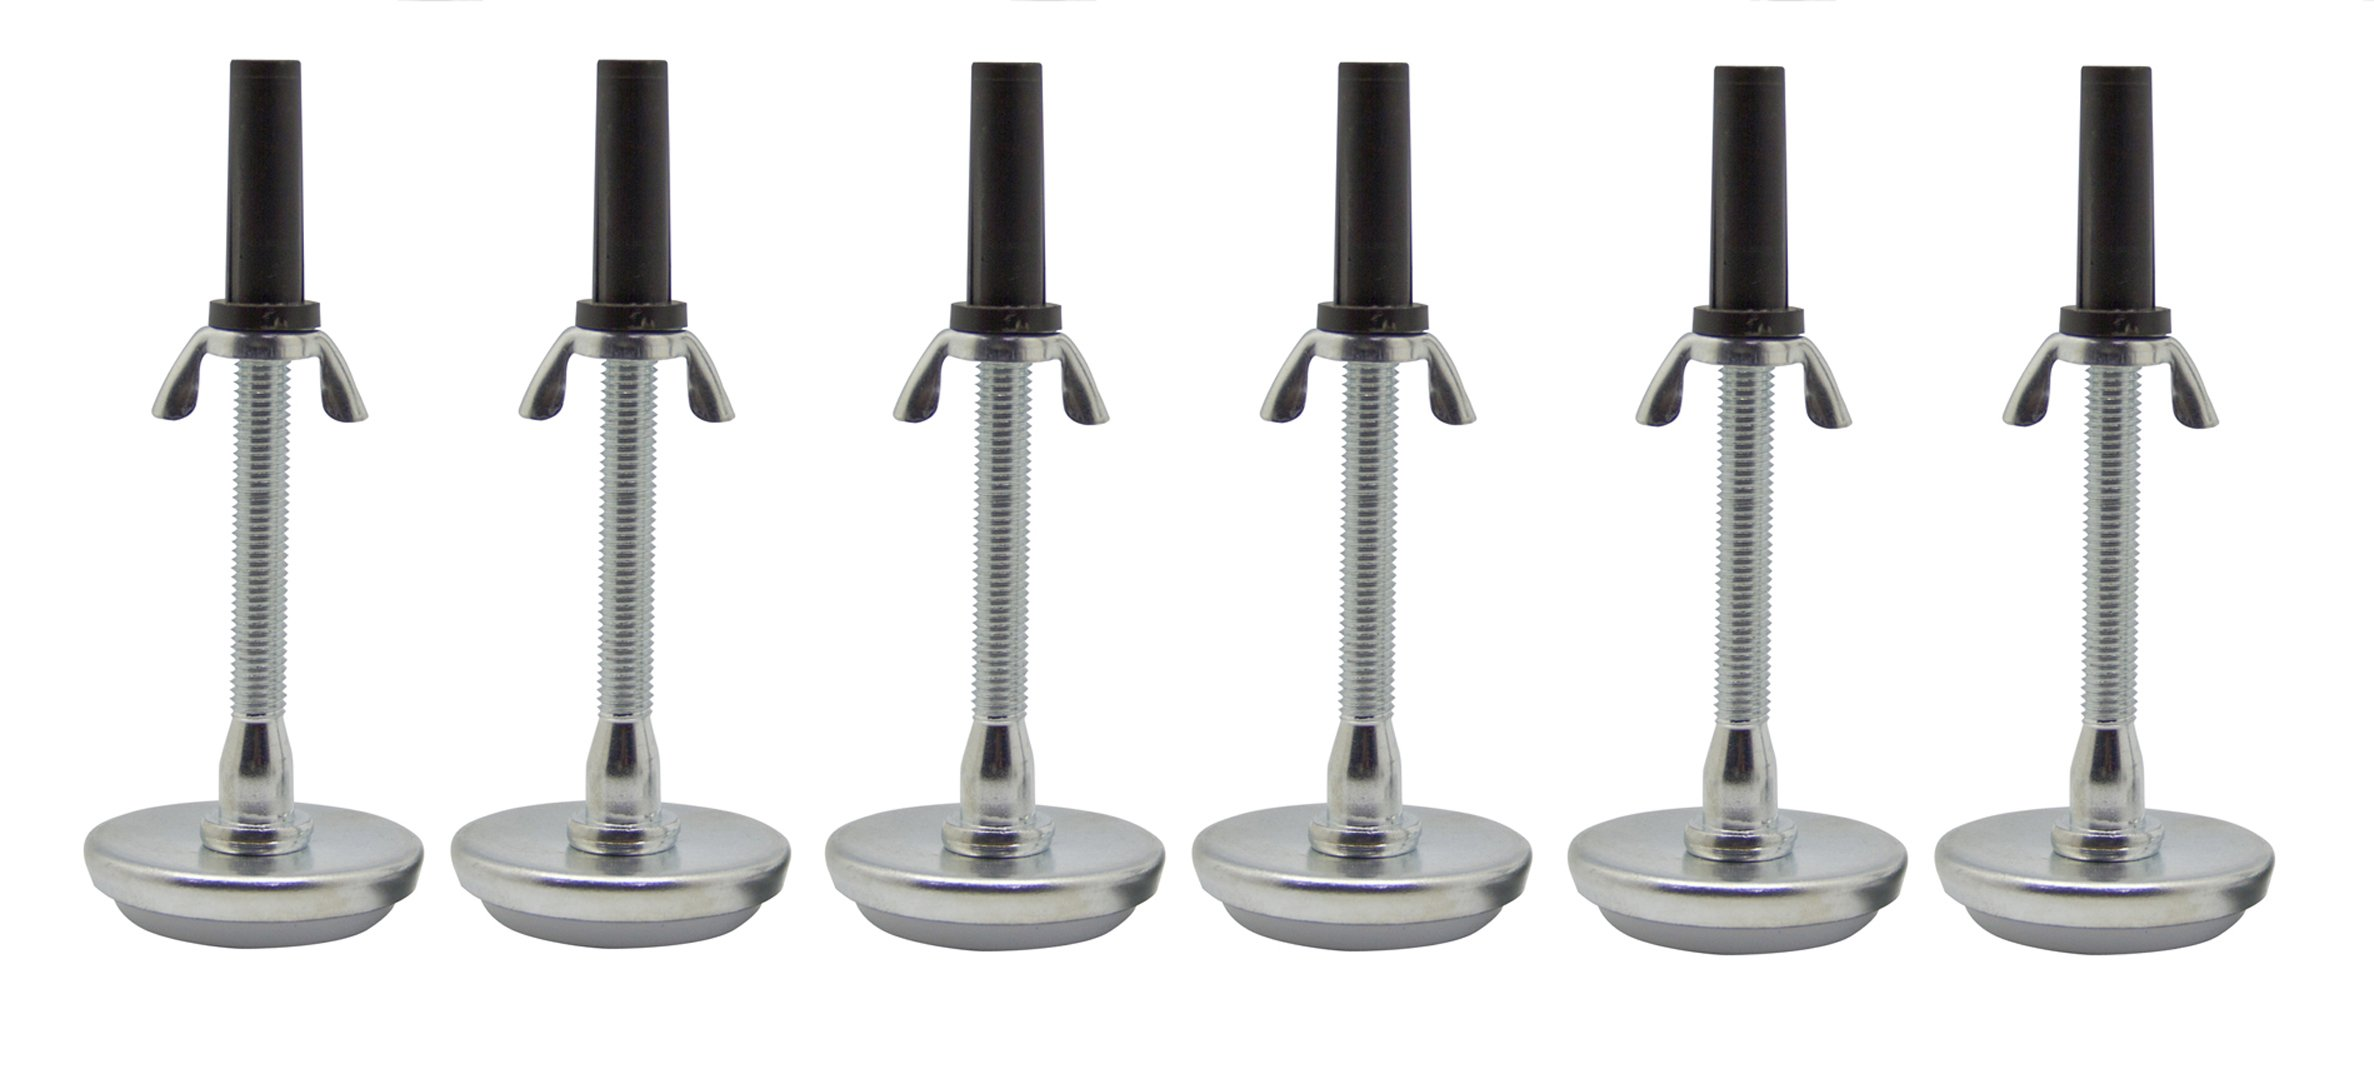 Kings Brand Adjustable 5.8'' Threaded Bed Frame Riser Glide Legs, Set of 6 Glides